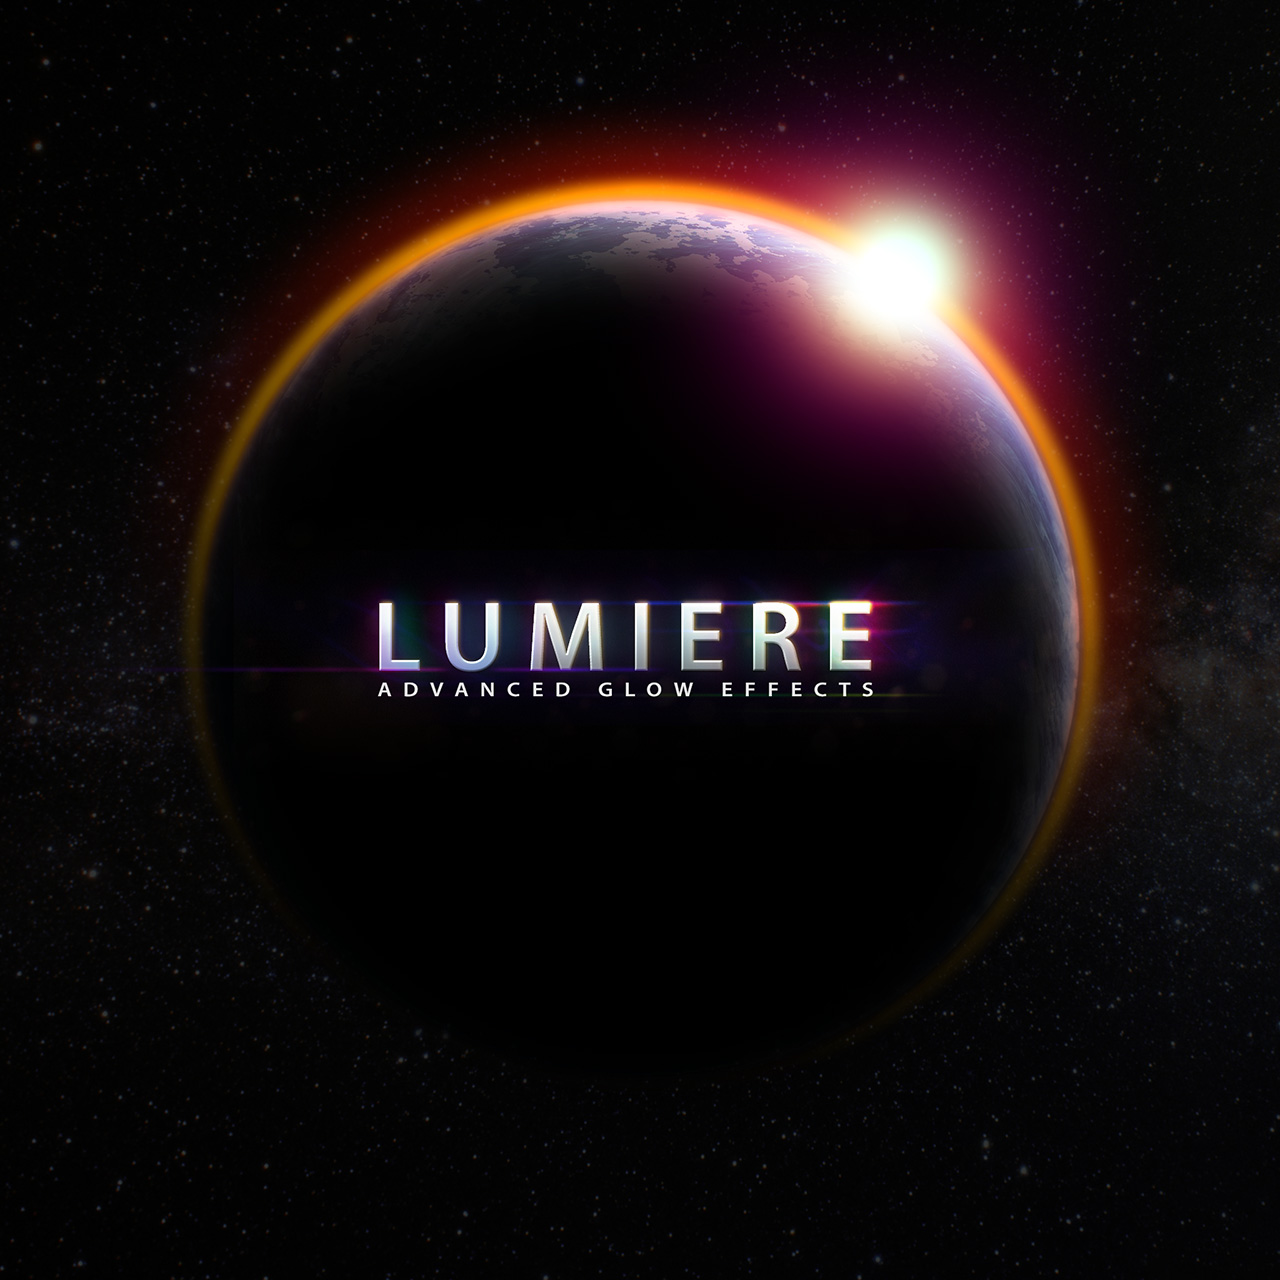 software_lumiere_planet_ad